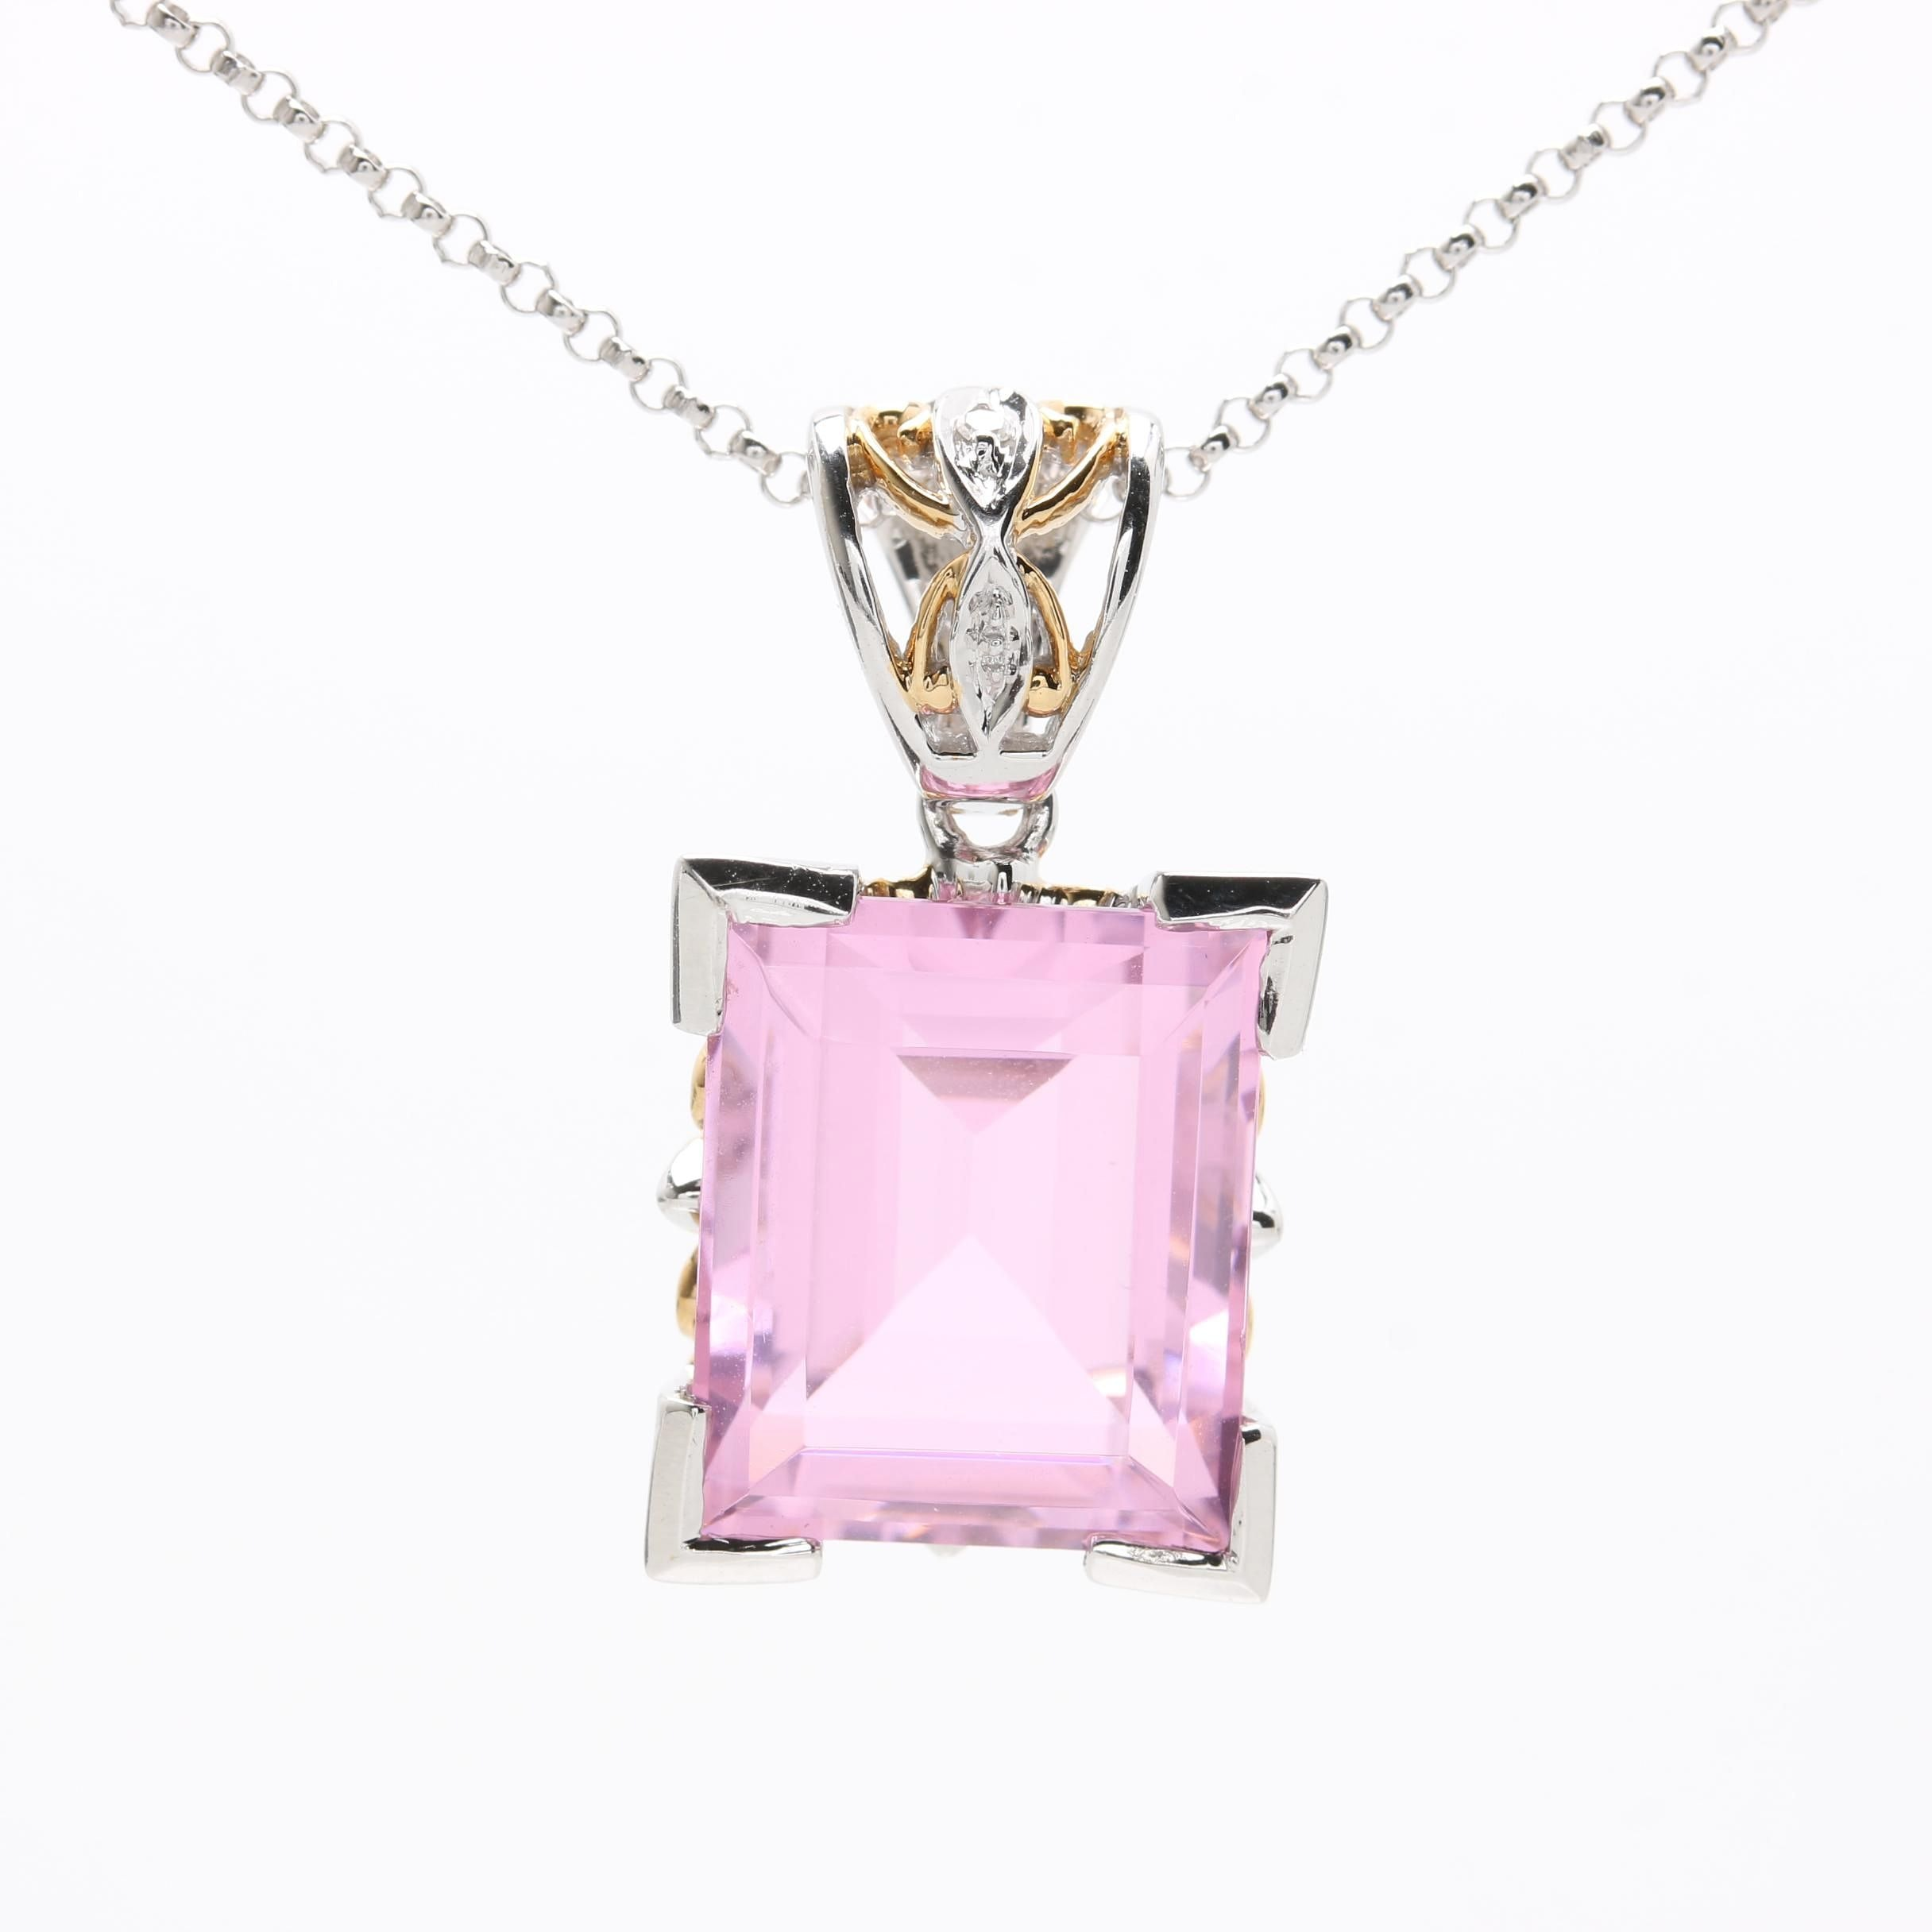 14K White Gold Pink Cubic Zirconia and Diamond Pendant Necklace